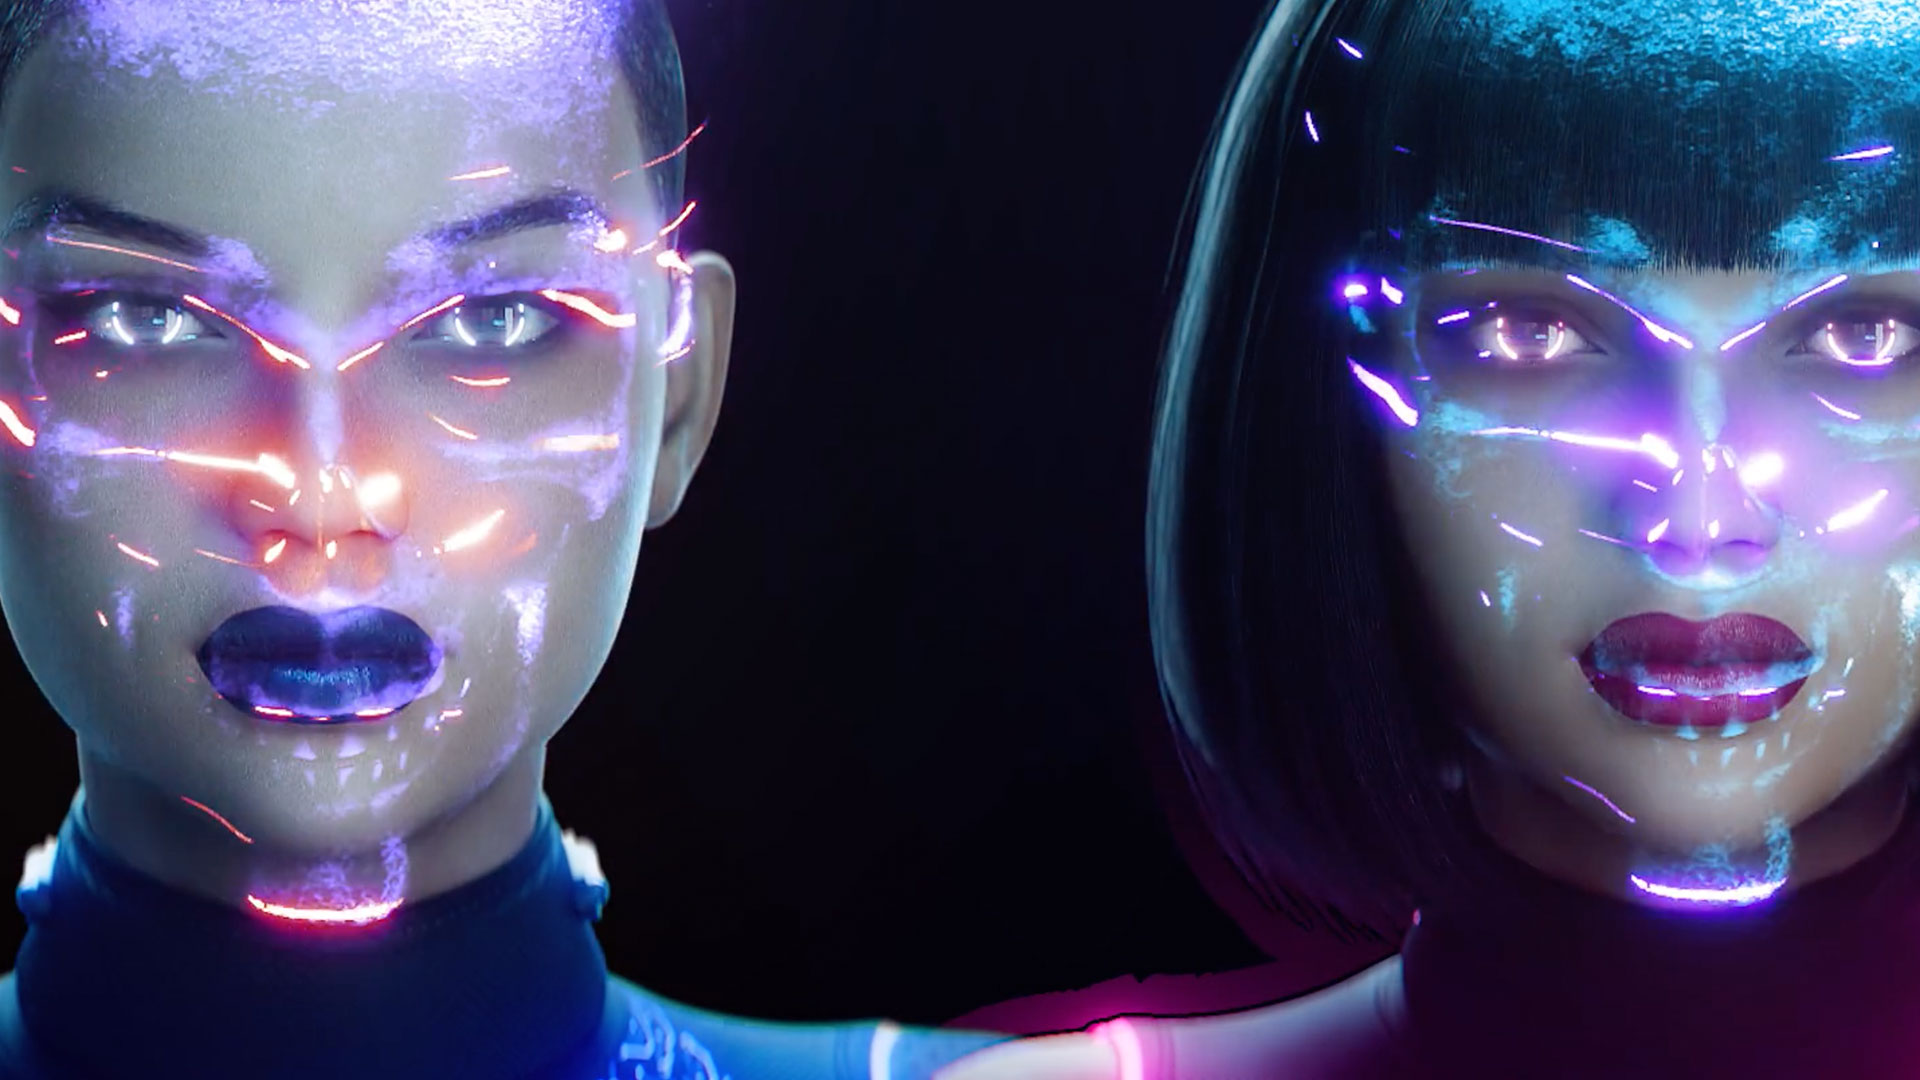 Animation of two women with lightning grazing their faces.